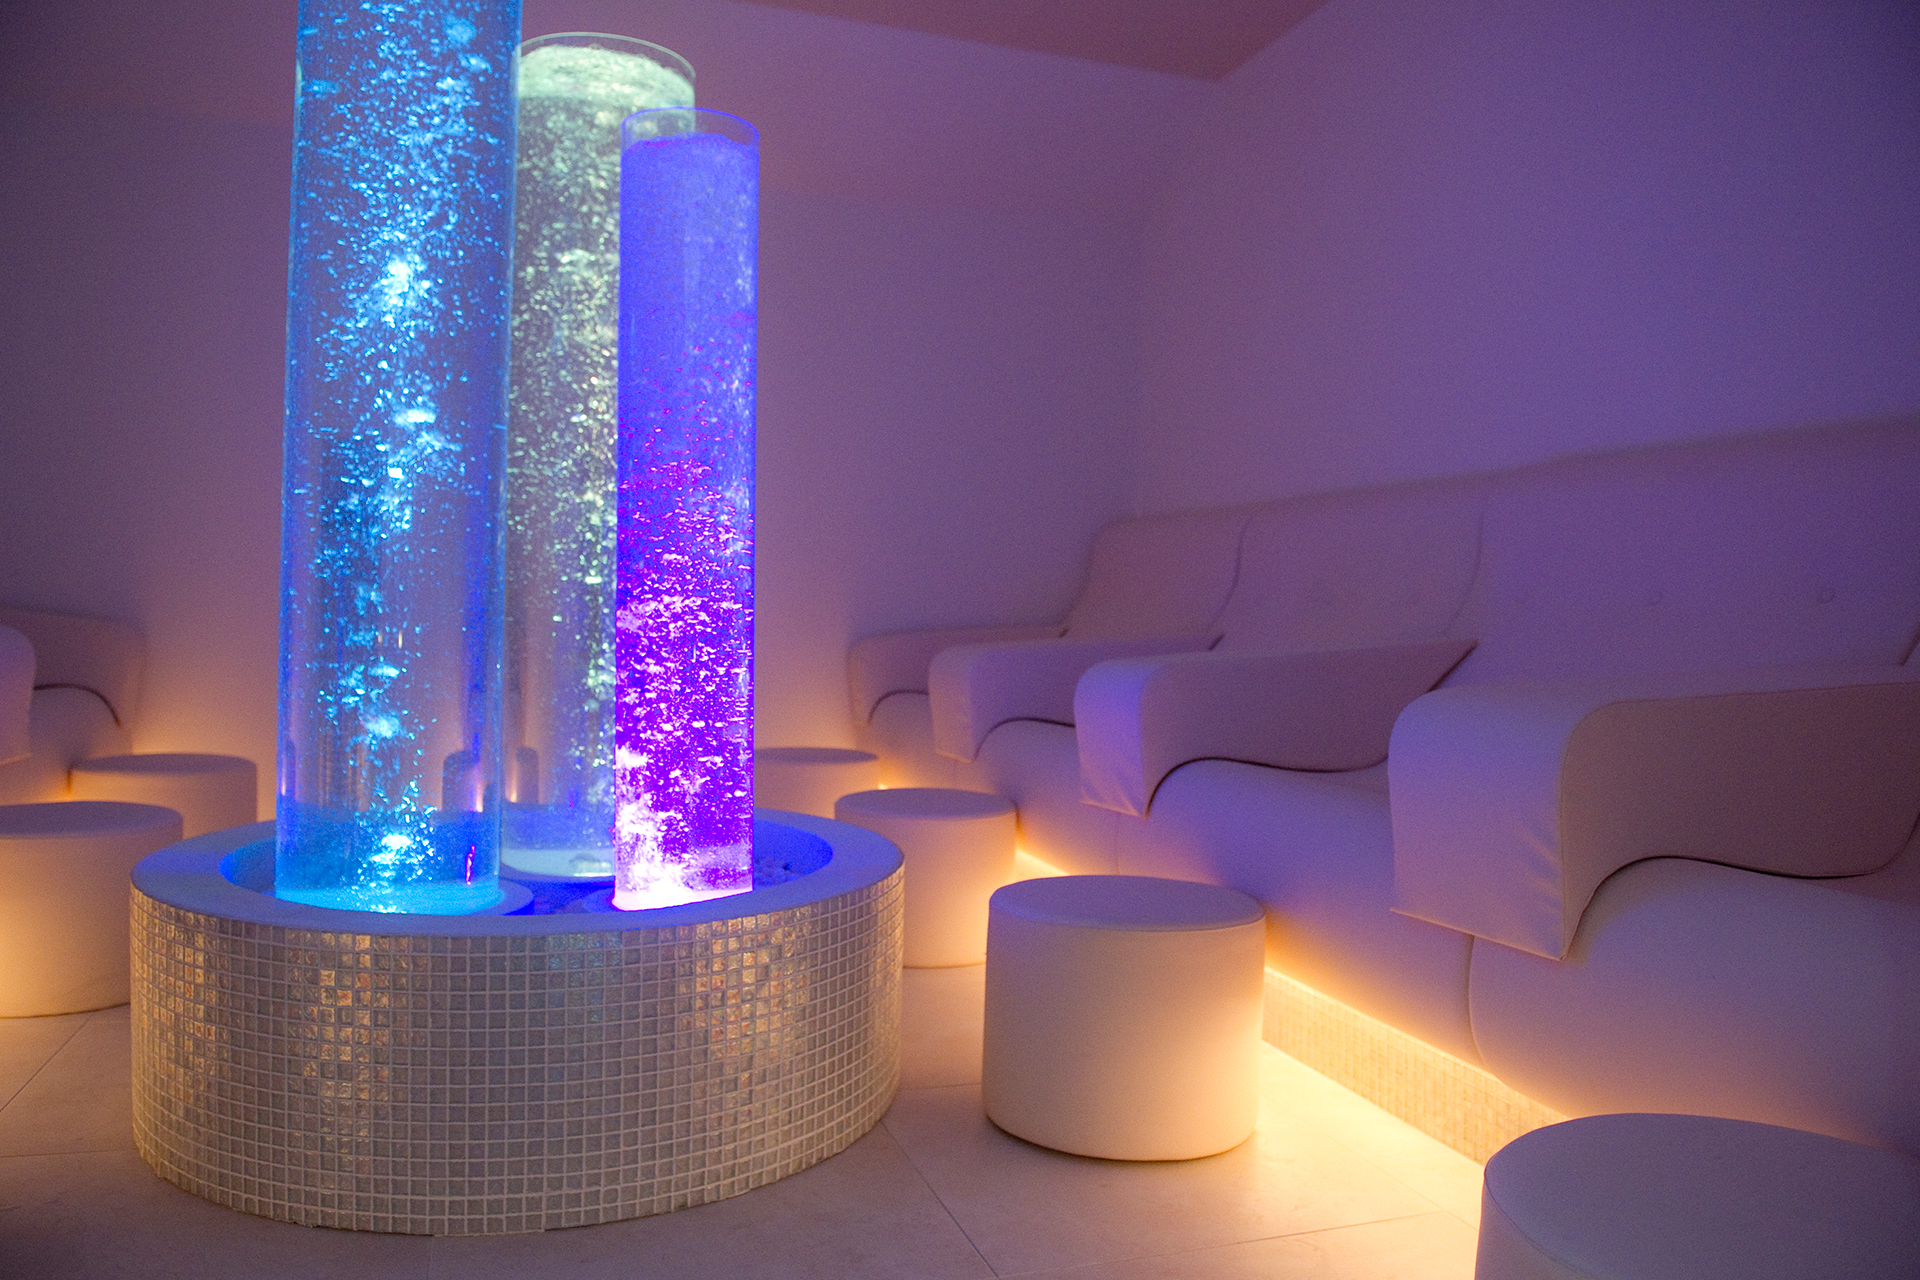 Home-House-spa_01.jpg